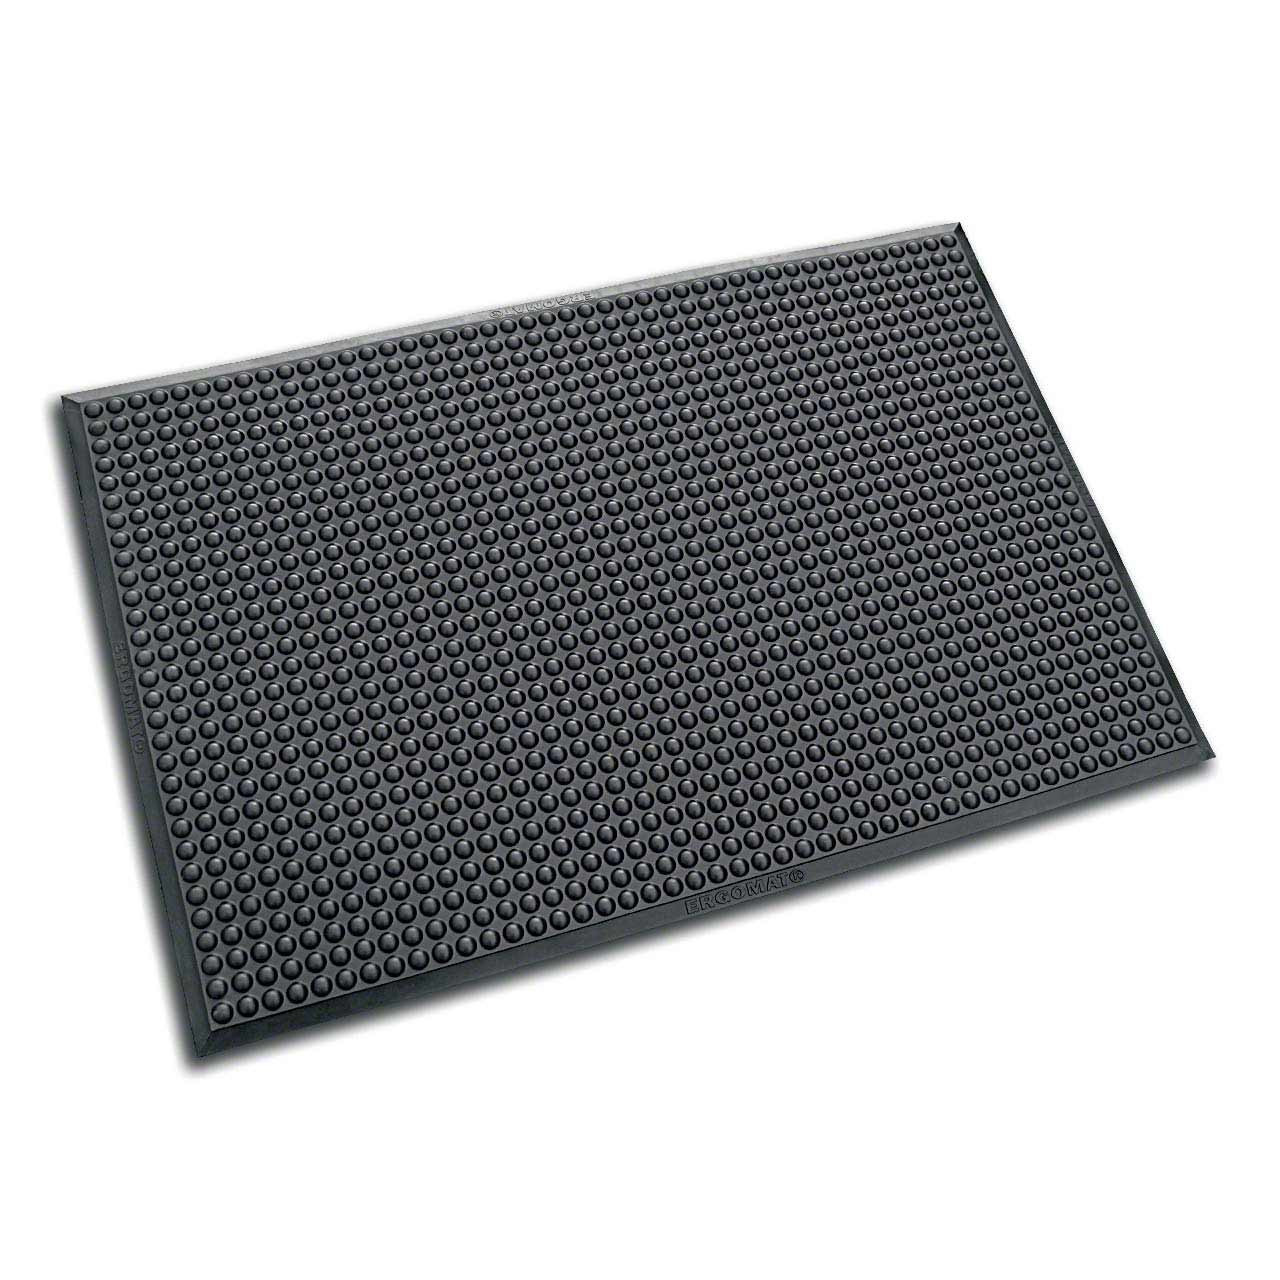 Ergomat Classic matting comes in several sizes to choose from